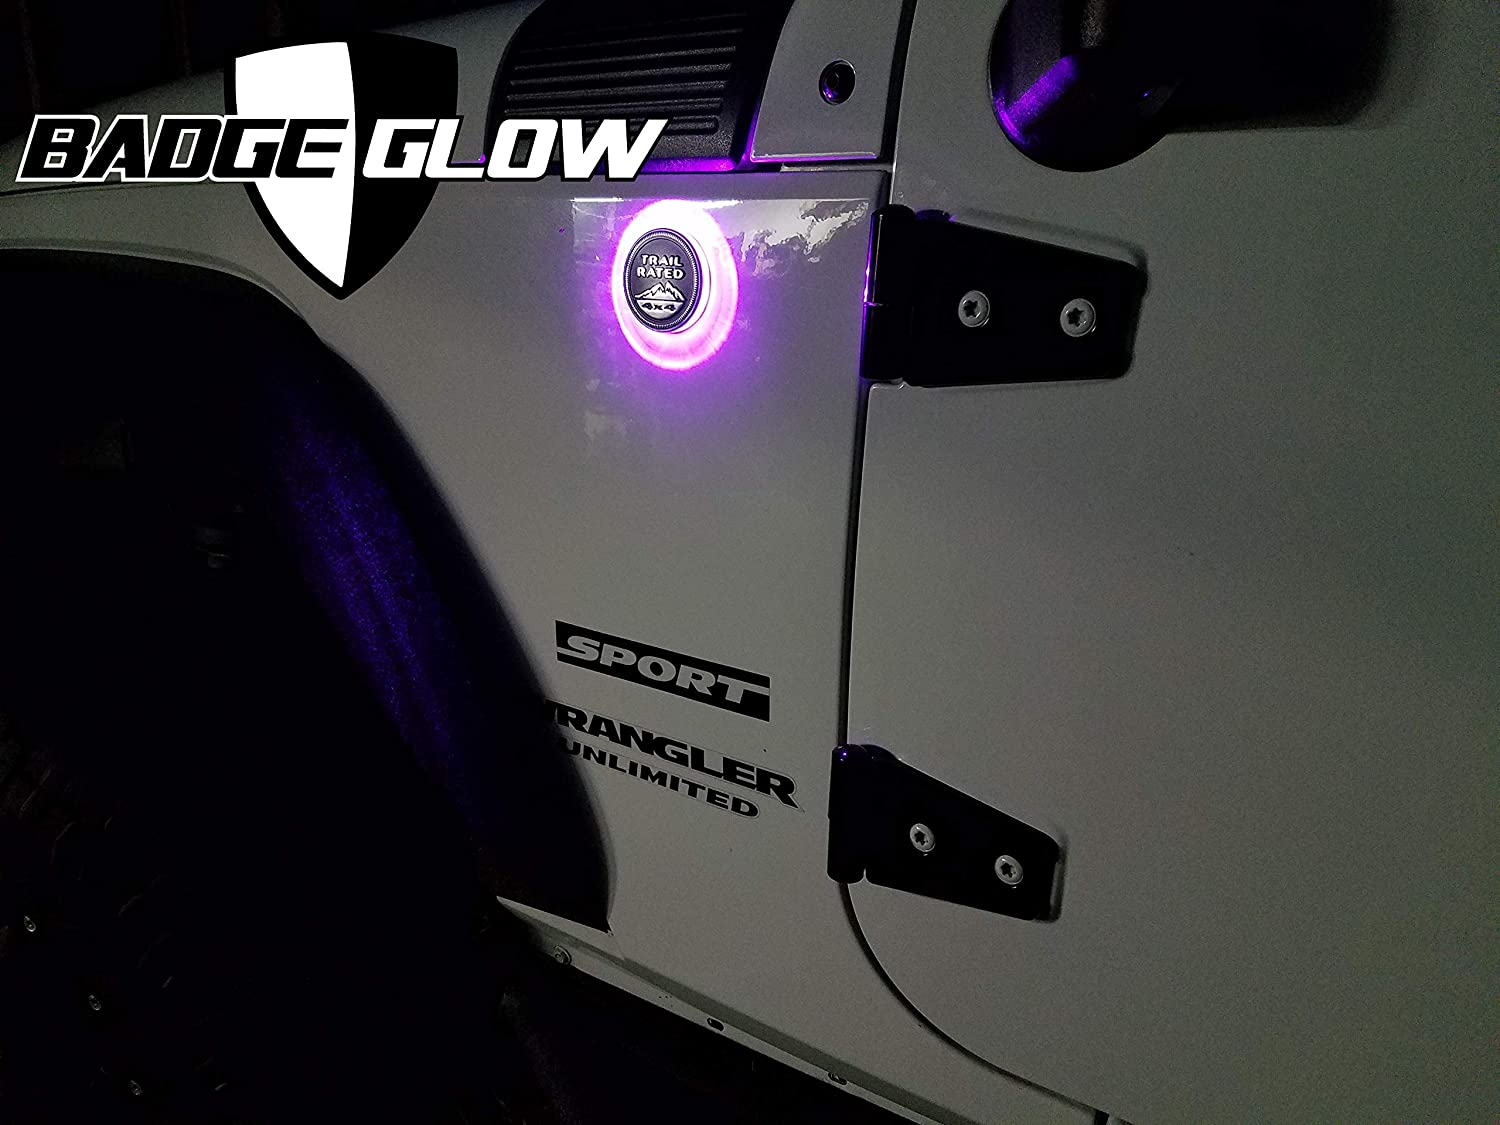 Badge Glow LED Back Light Designed For The Jeep Wrangler /& Cherokee Trail Rated Badge ~ Available in 6 LED Colors ~ Off-road Use Only ~ MADE IN THE USA! UV//Pink